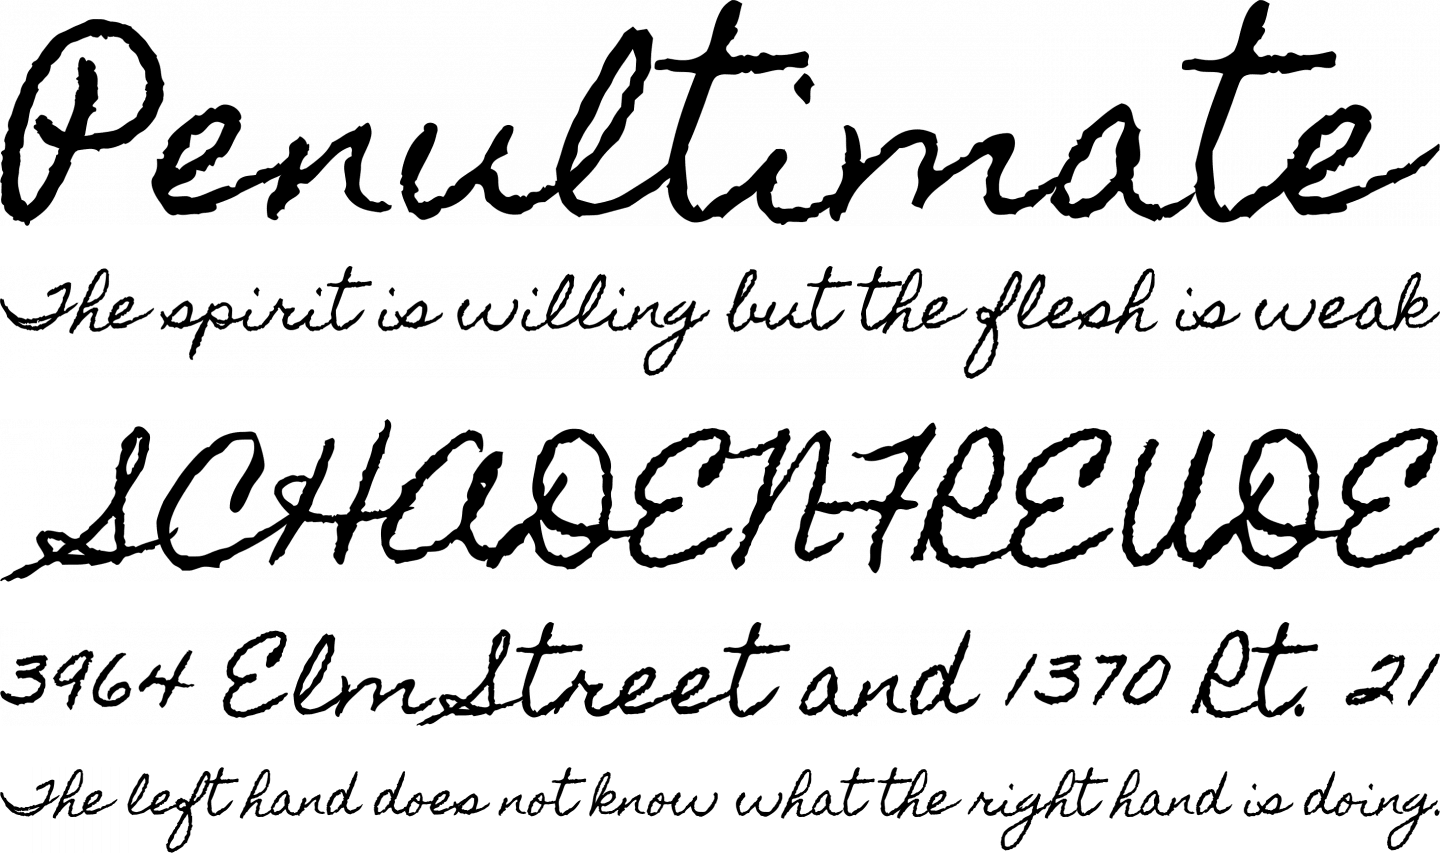 Homemade Apple Font Free by Font Diner » Font Squirrel